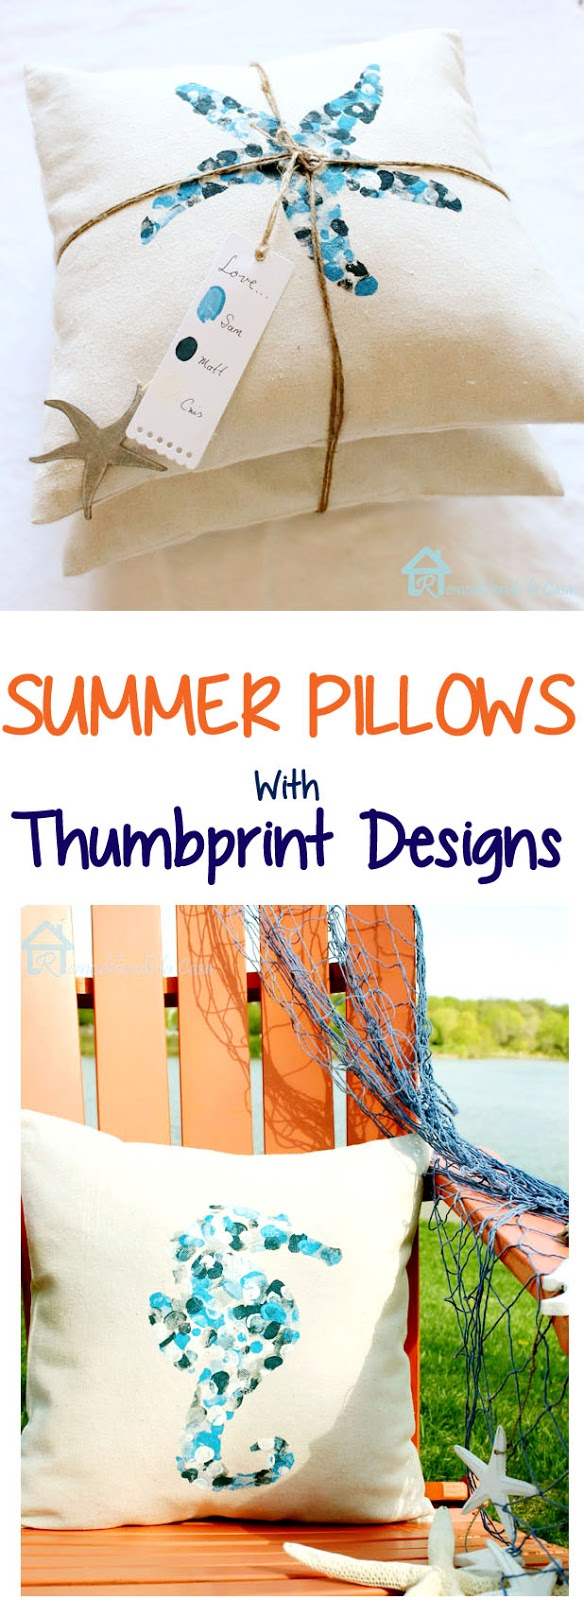 diy - summer pillows with thumbprint designs